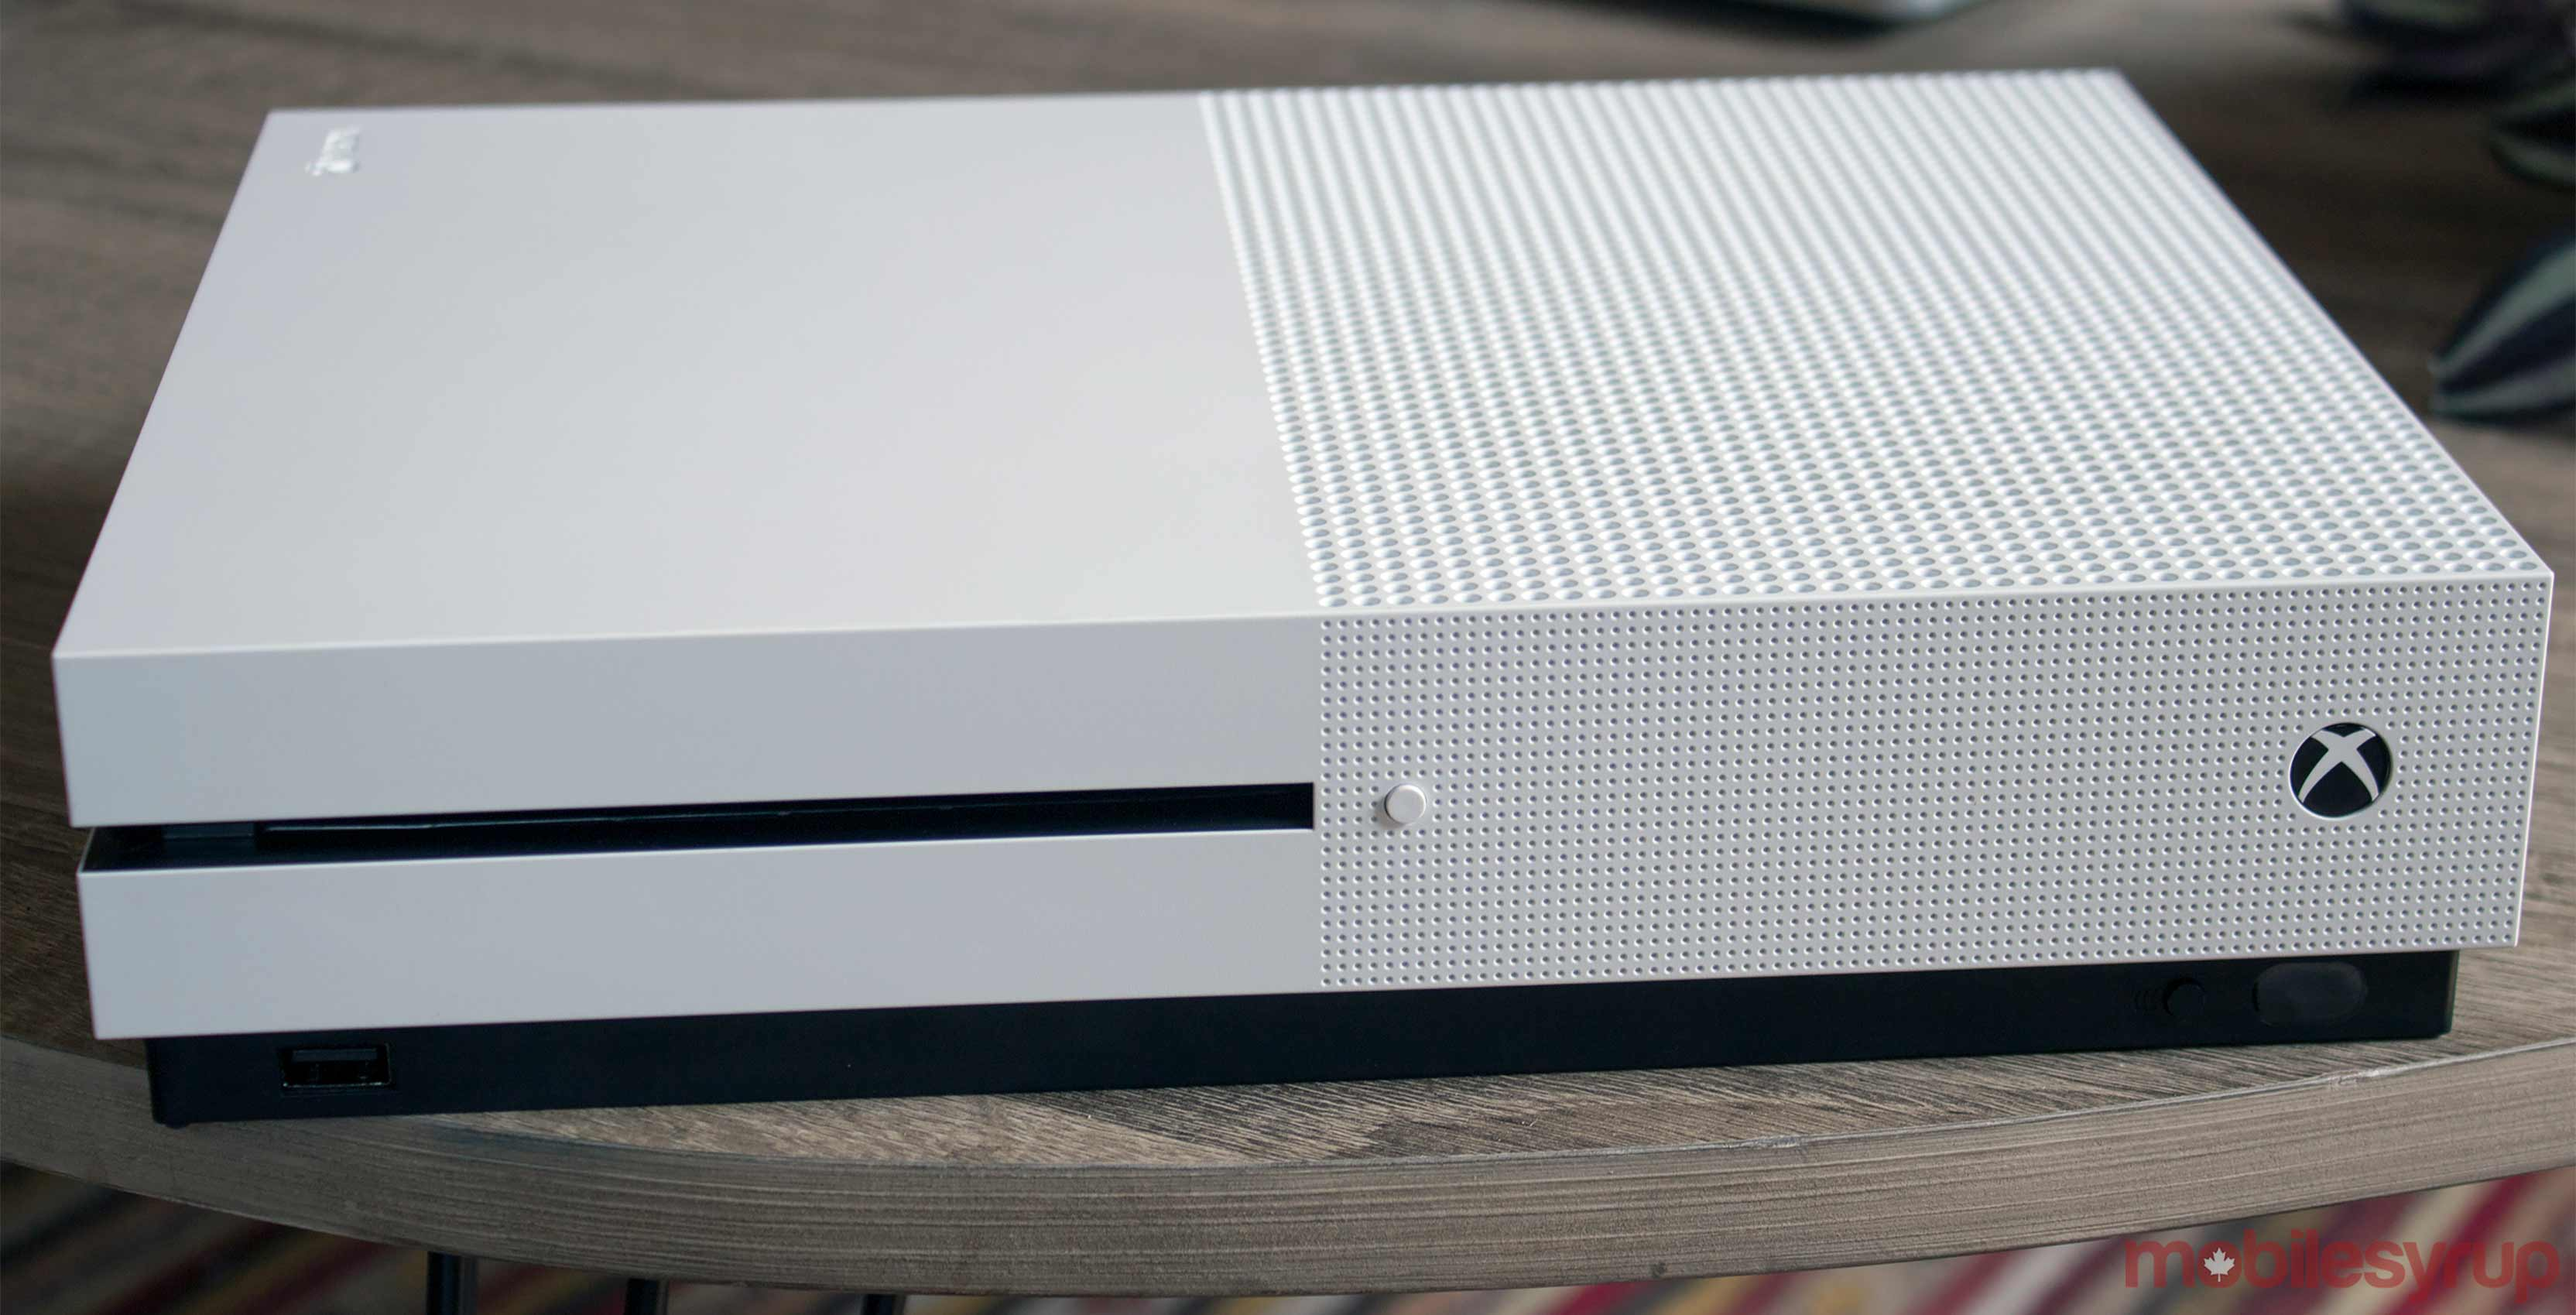 Xbox One S white on table